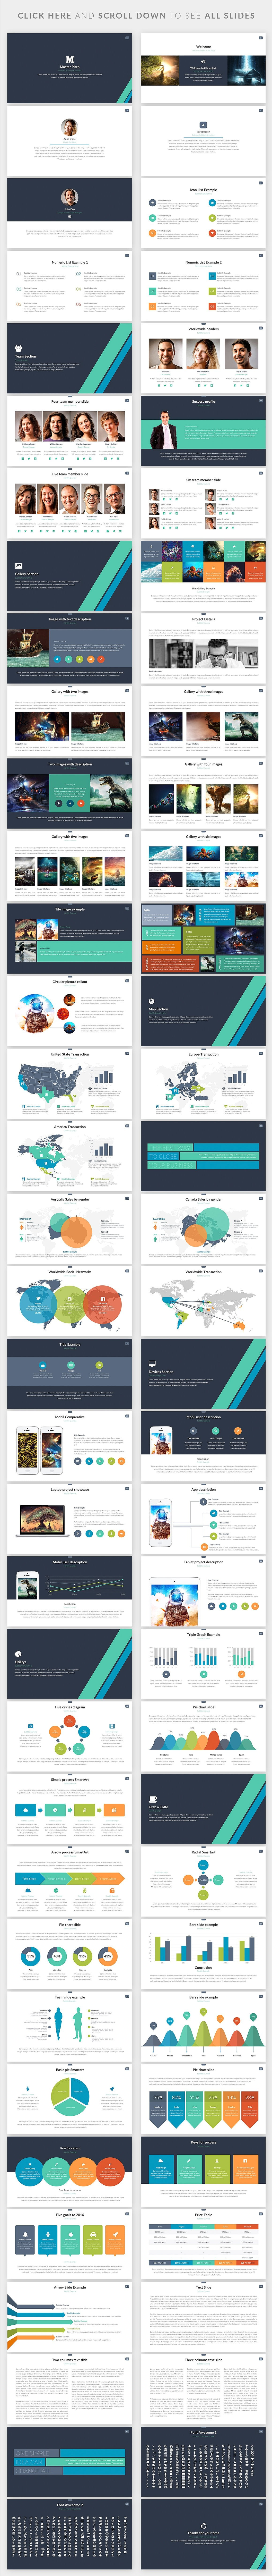 20 Powerpoint Templates with 81% OFF - Master Pitch 03